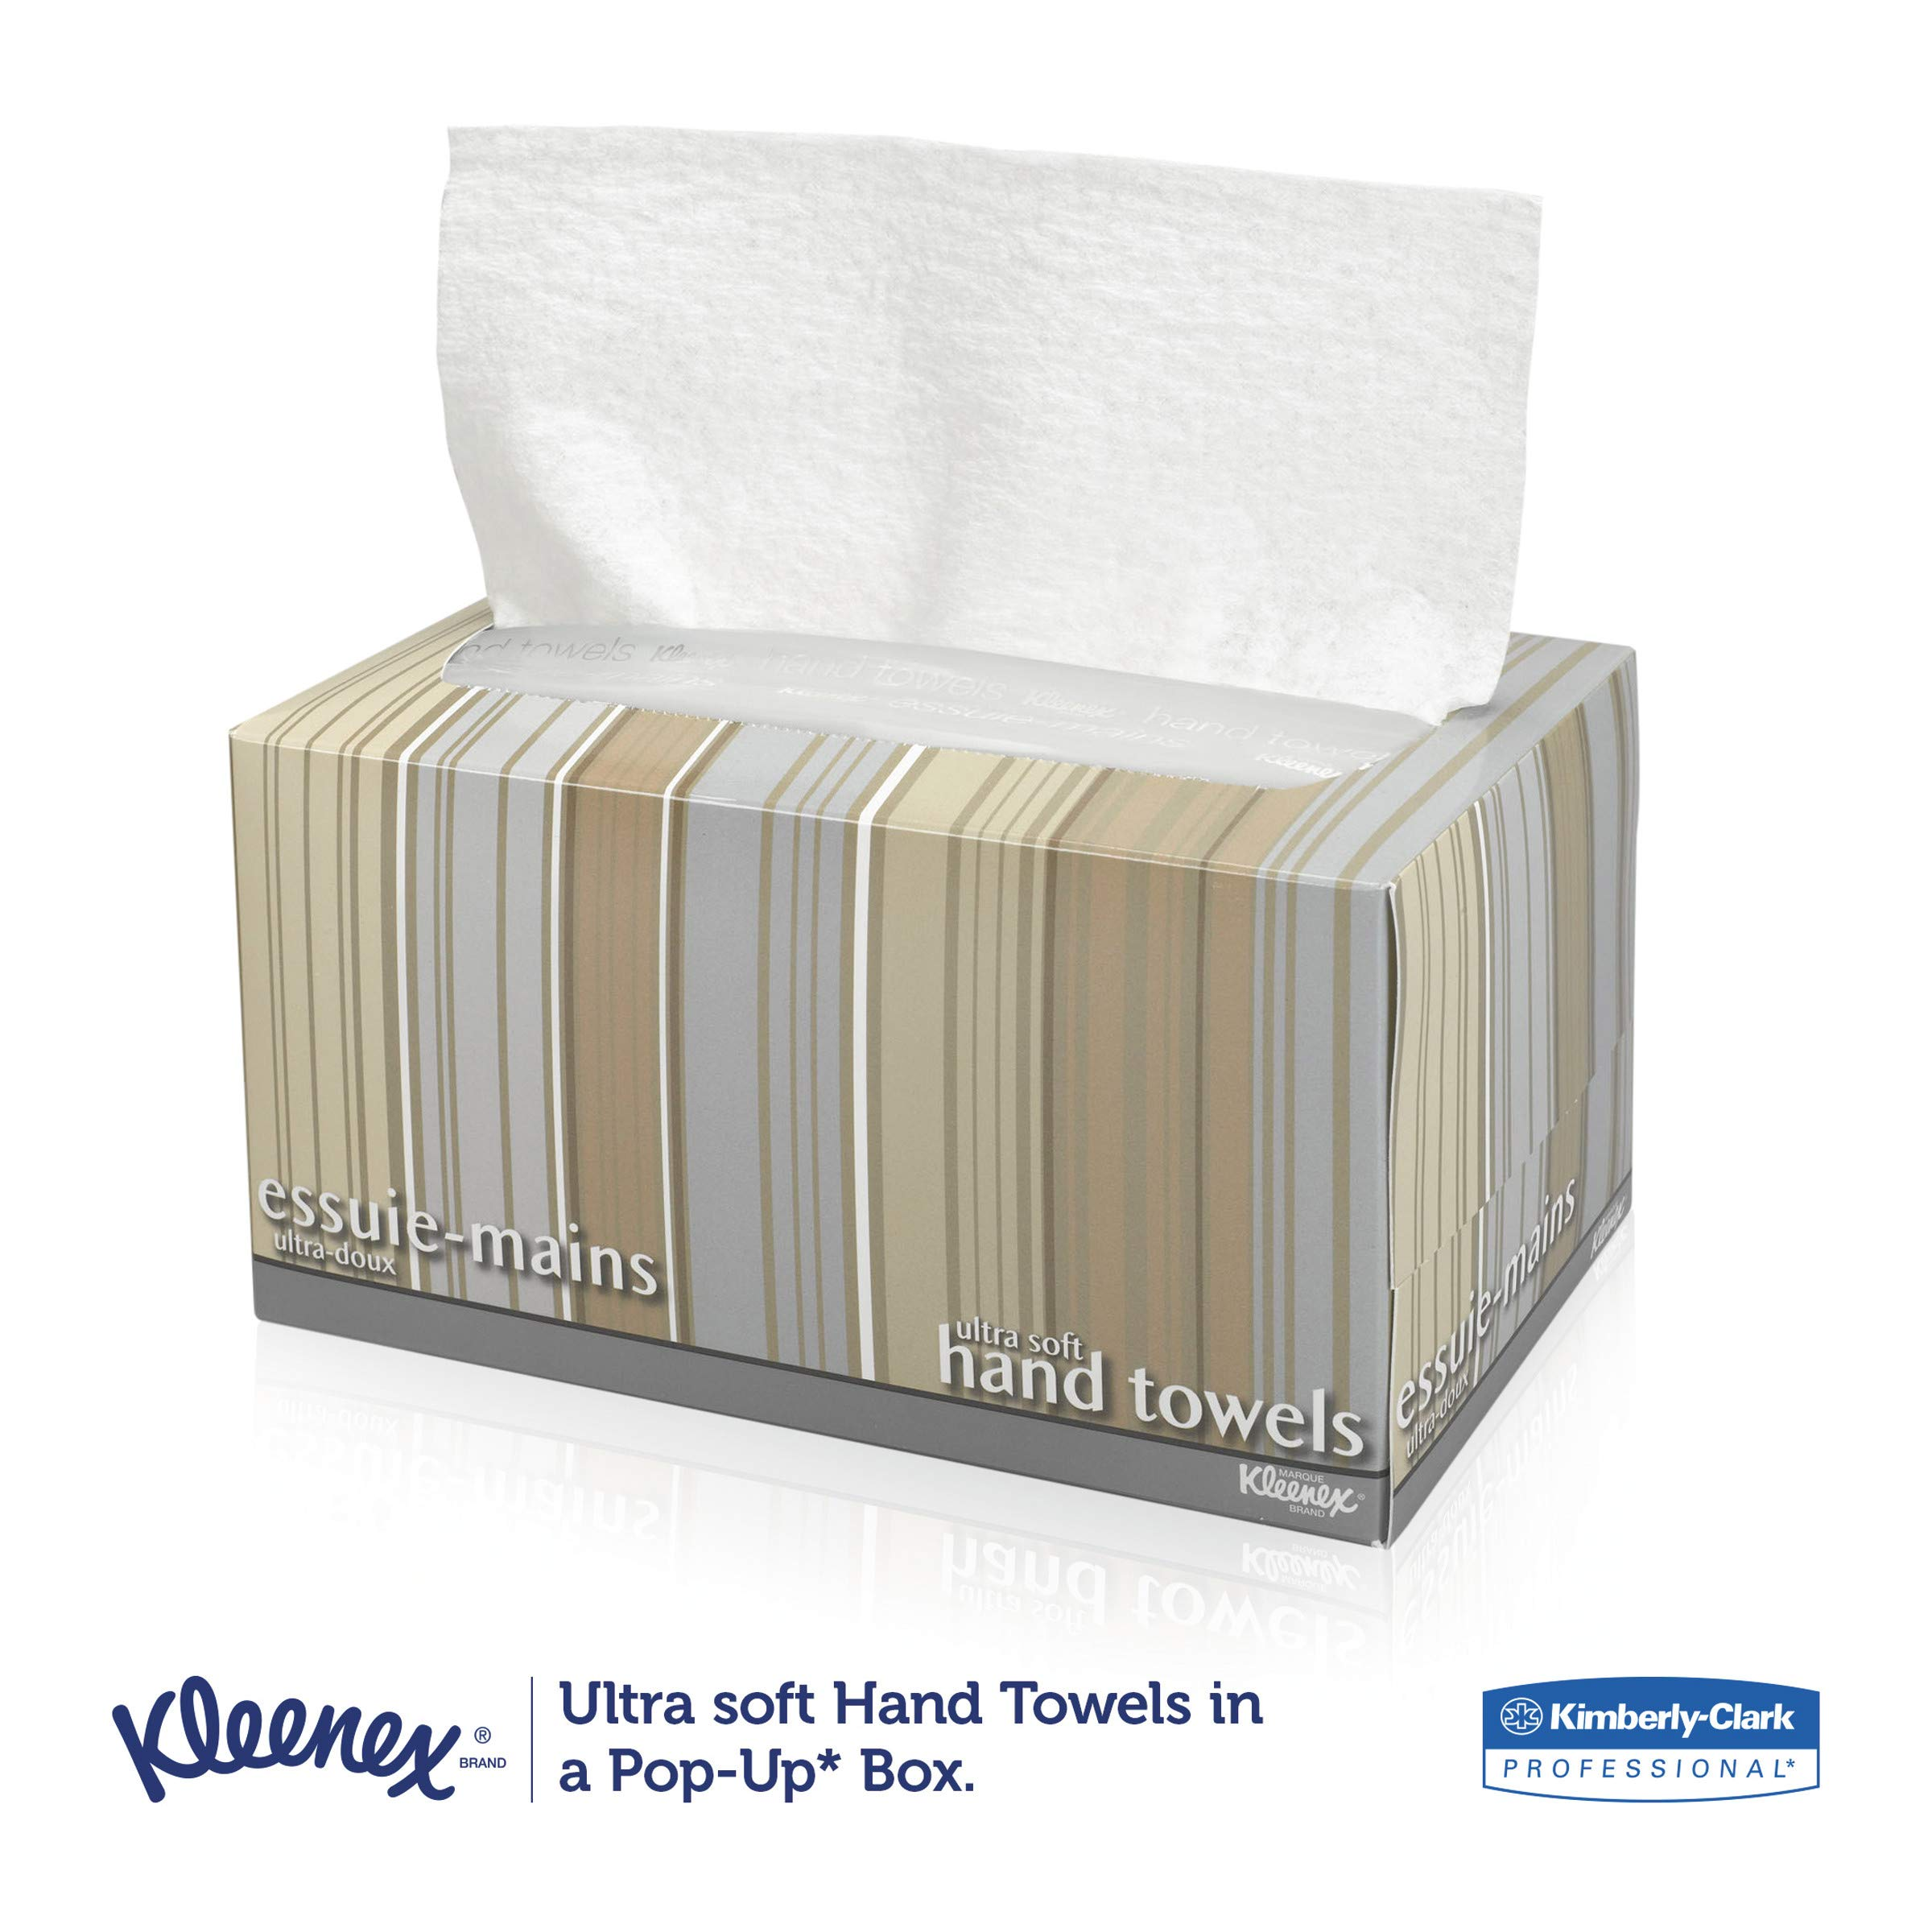 Kleenex 11268CT Ultra Soft Hand Towels, POP-UP Box, White, 70 per Box (Case of 18 Boxes) by Kleenex (Image #3)